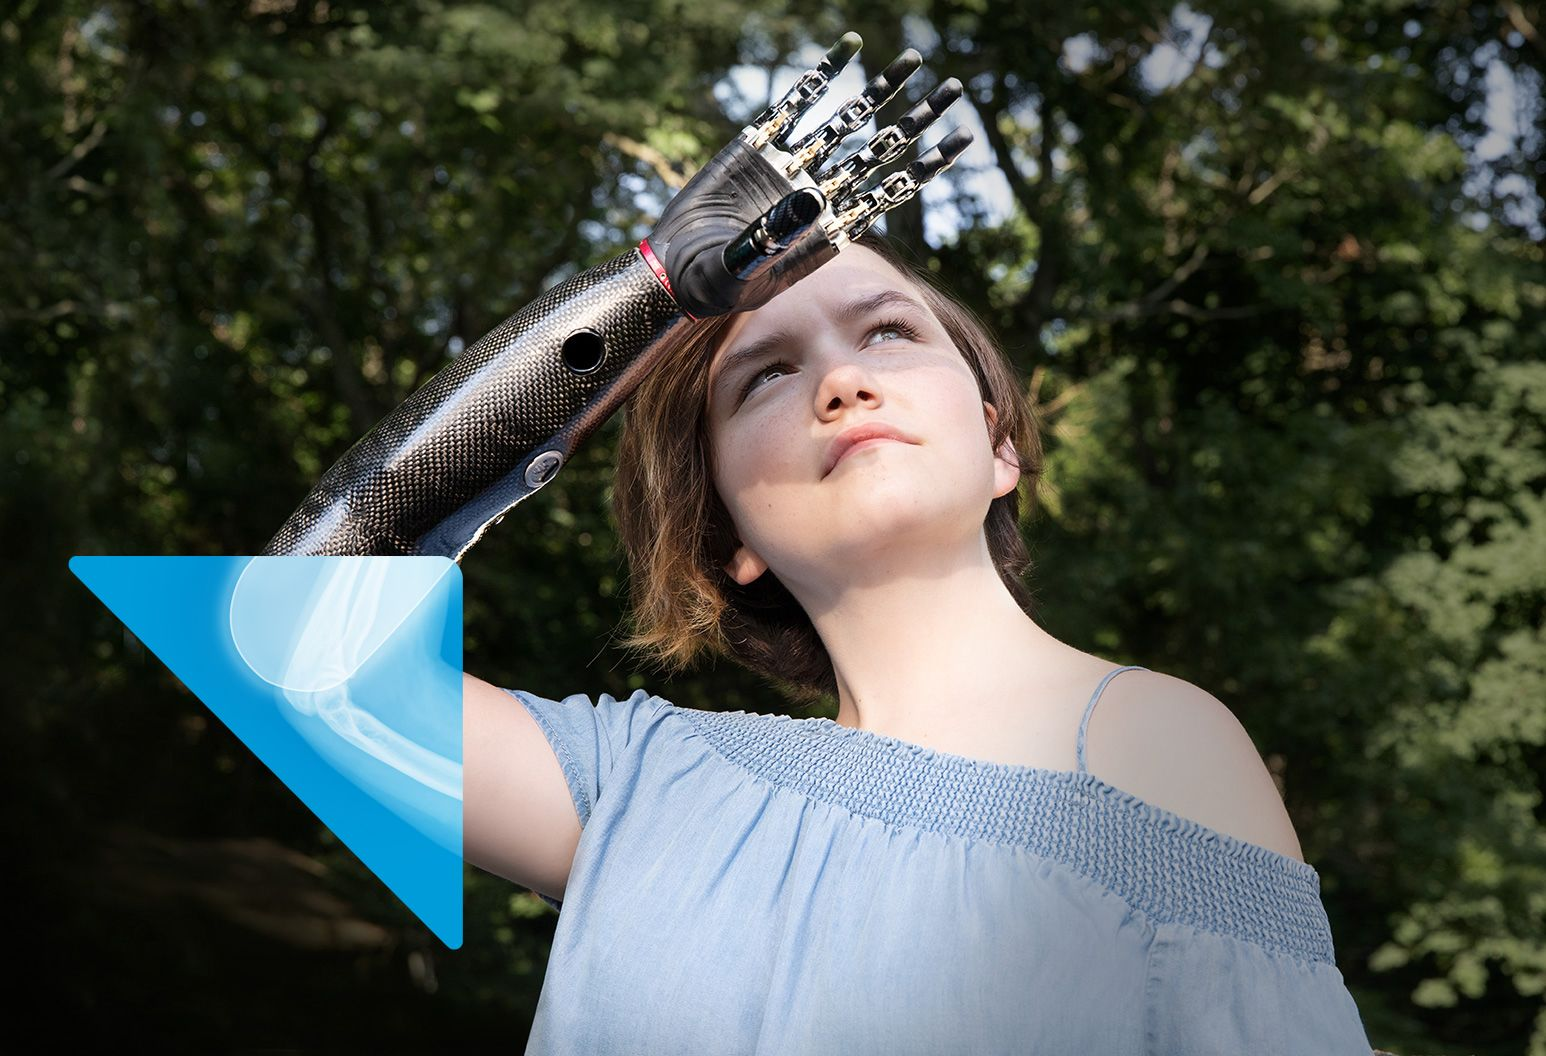 A girl with a prosthetic arm raised above her forehead standing with a background of trees.